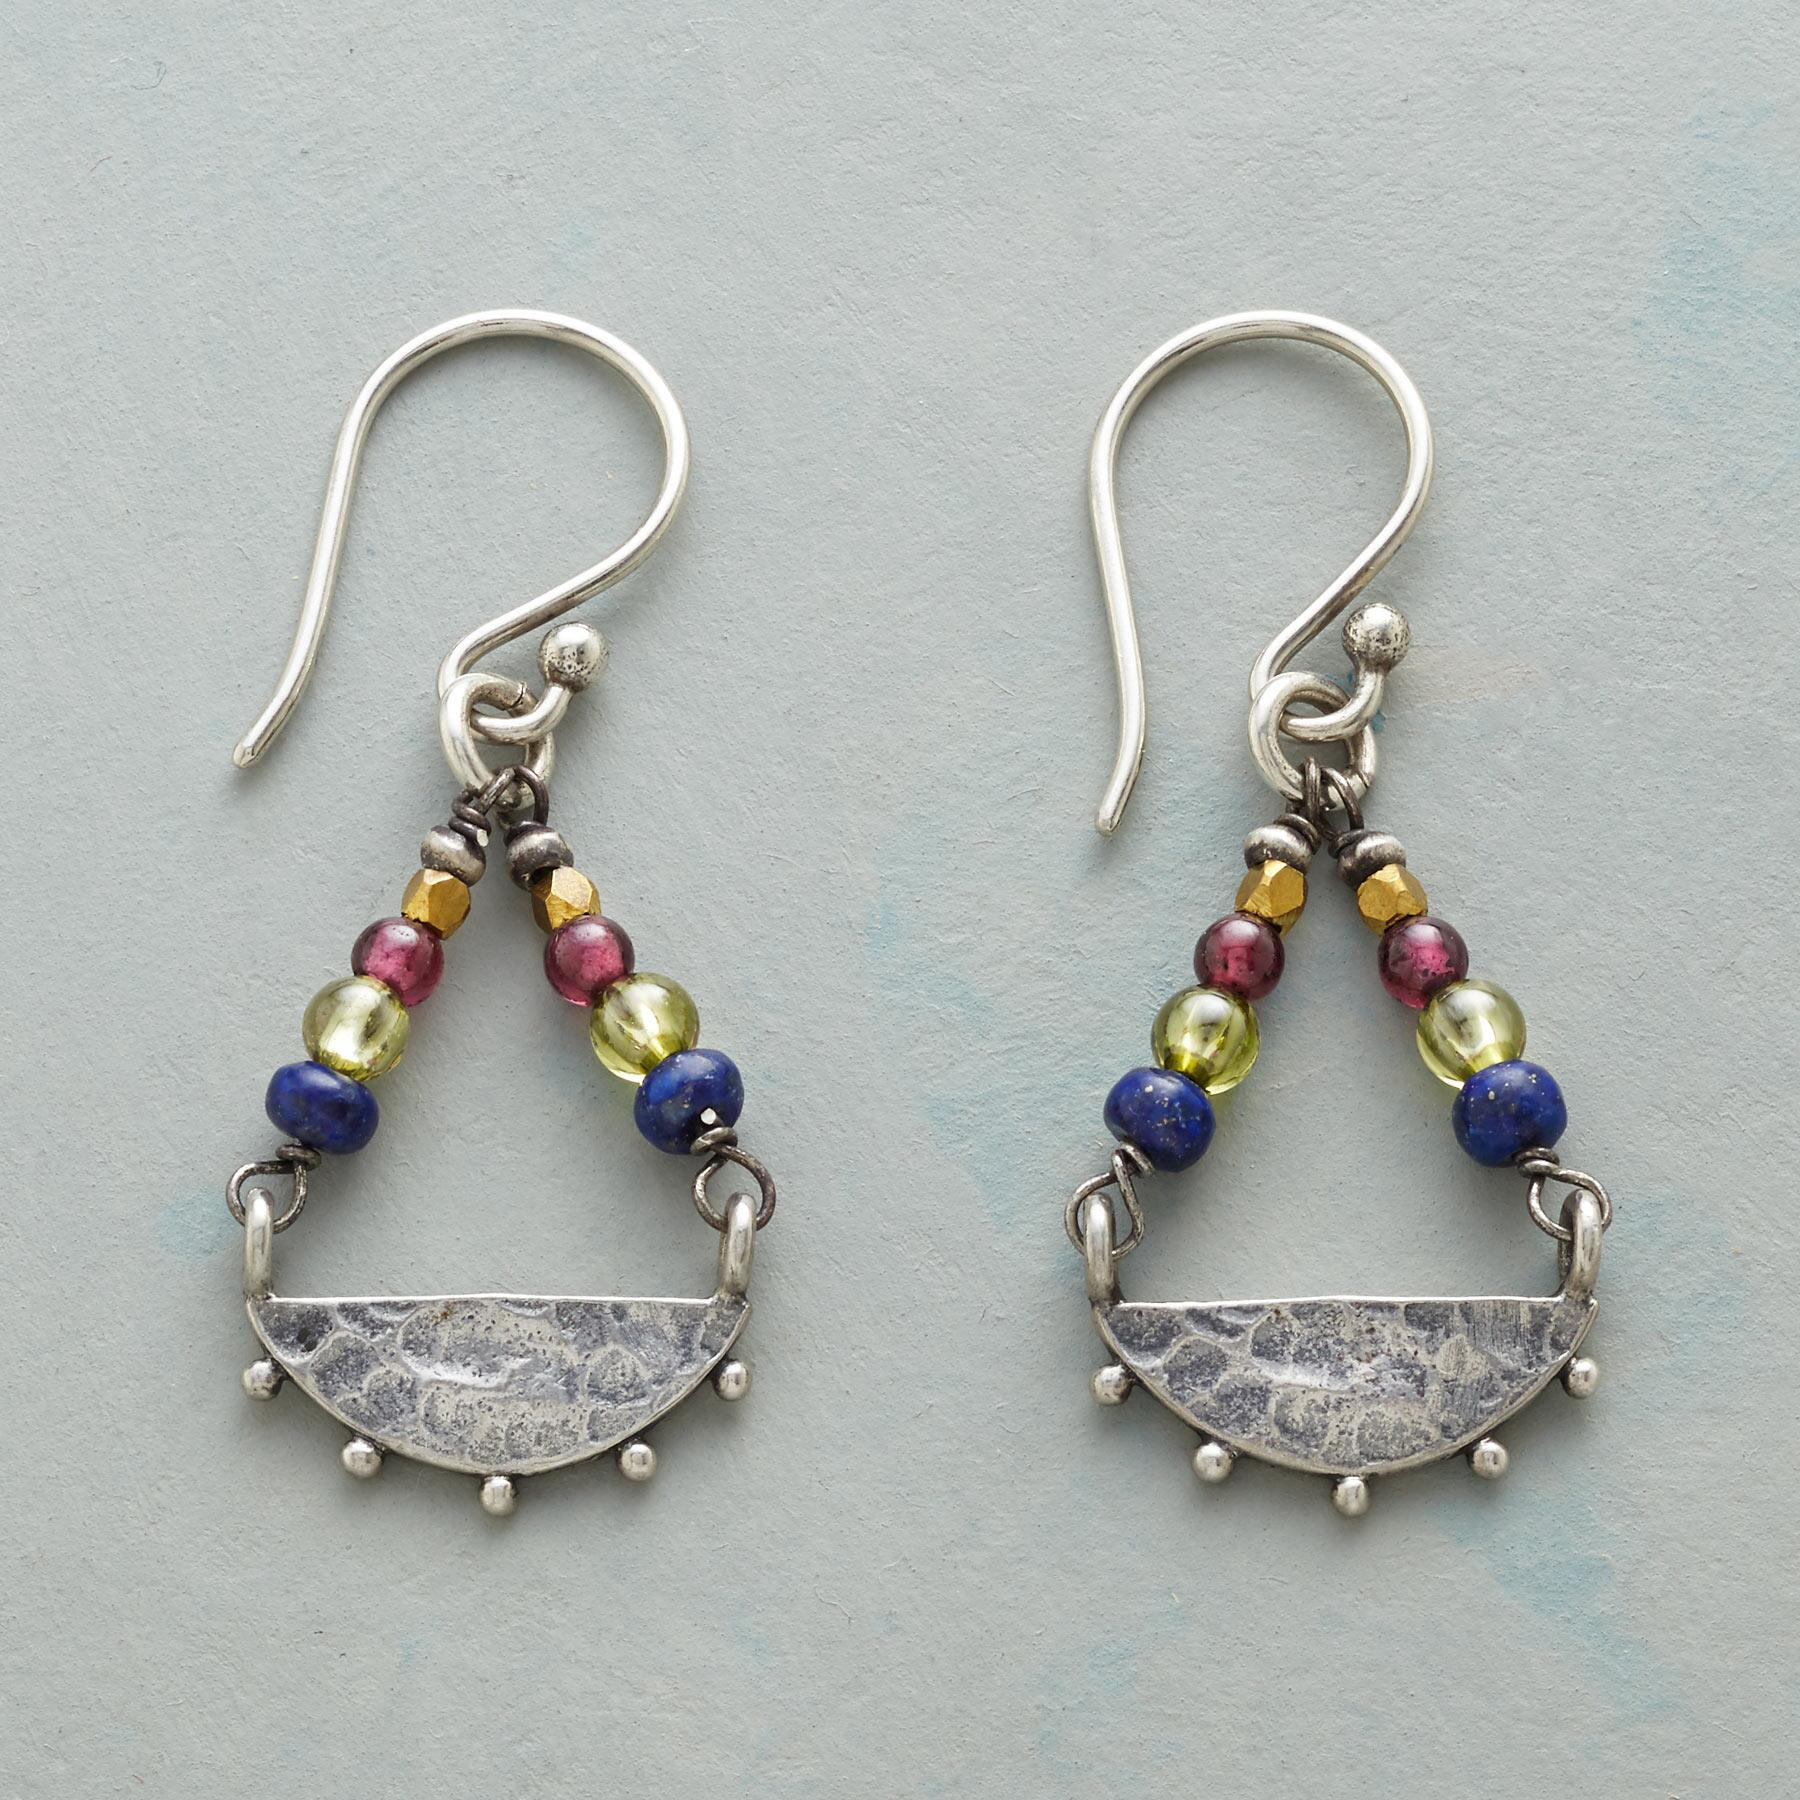 SWING DANCE EARRINGS: View 1